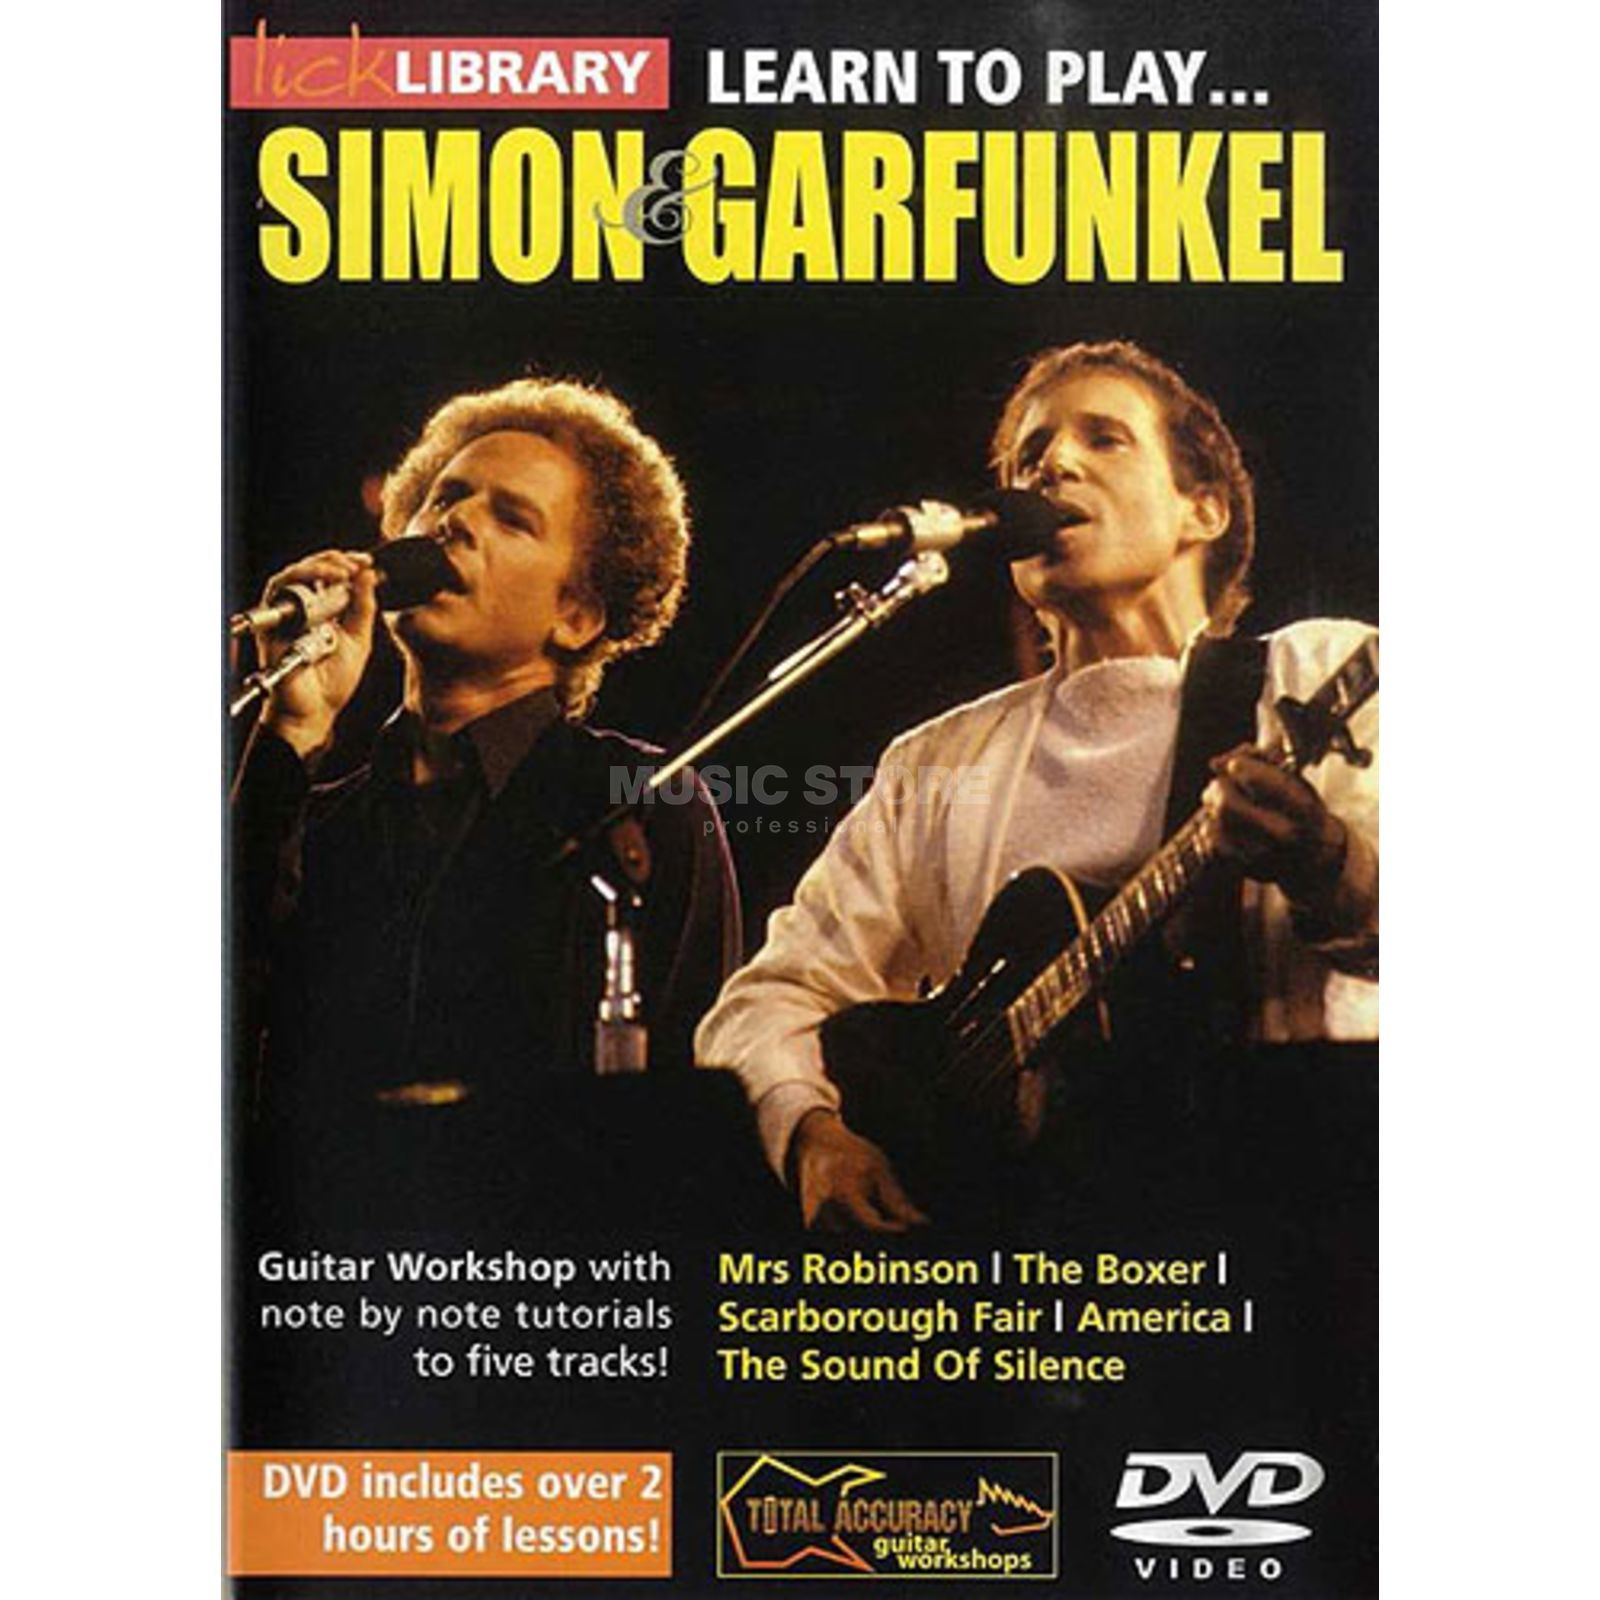 Roadrock International Lick Library: Learn To Play Simon And Garfunkel DVD Produktbillede